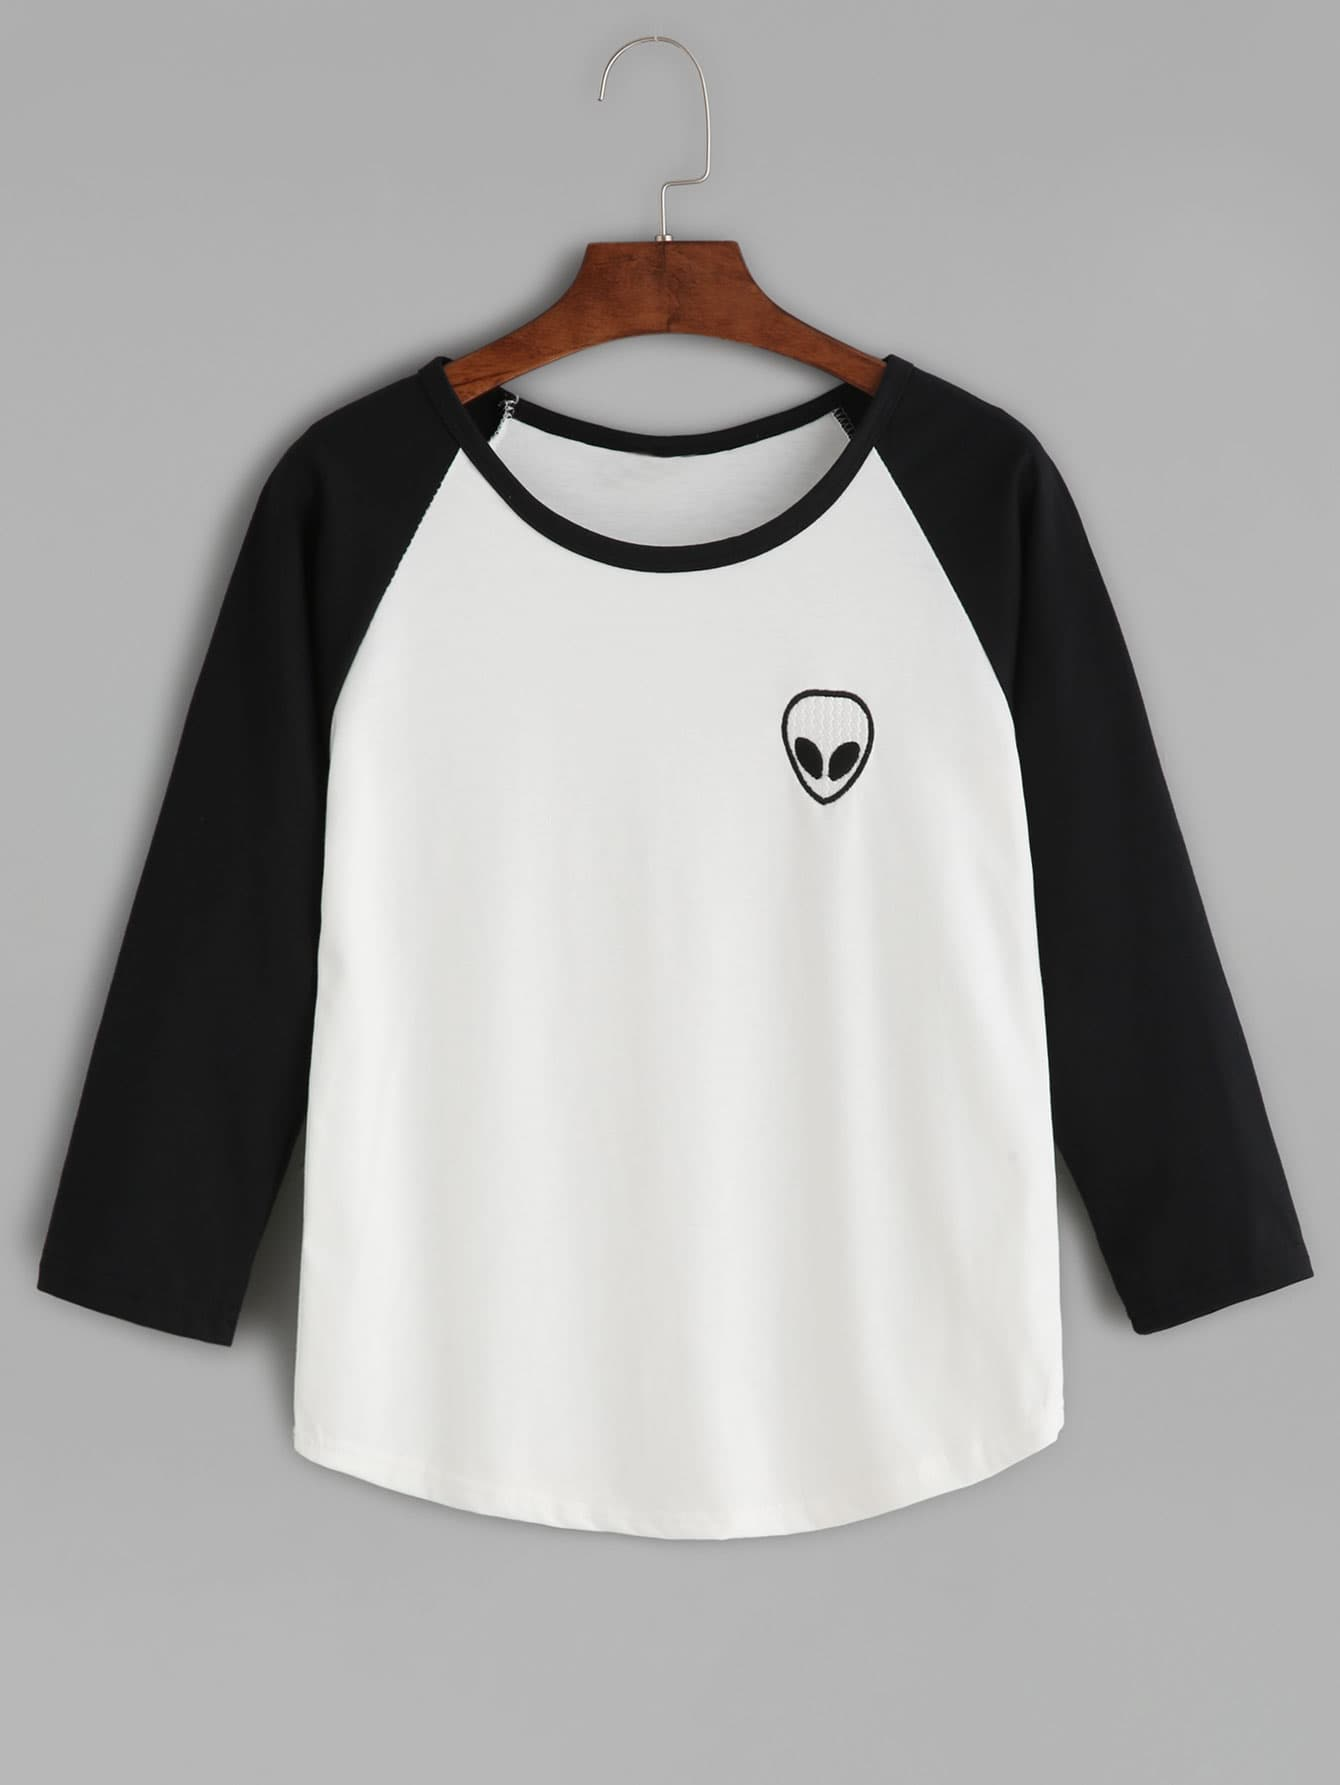 Black Alien Embroidered Raglan Sleeve Curved Hem T-shirt tee160819122